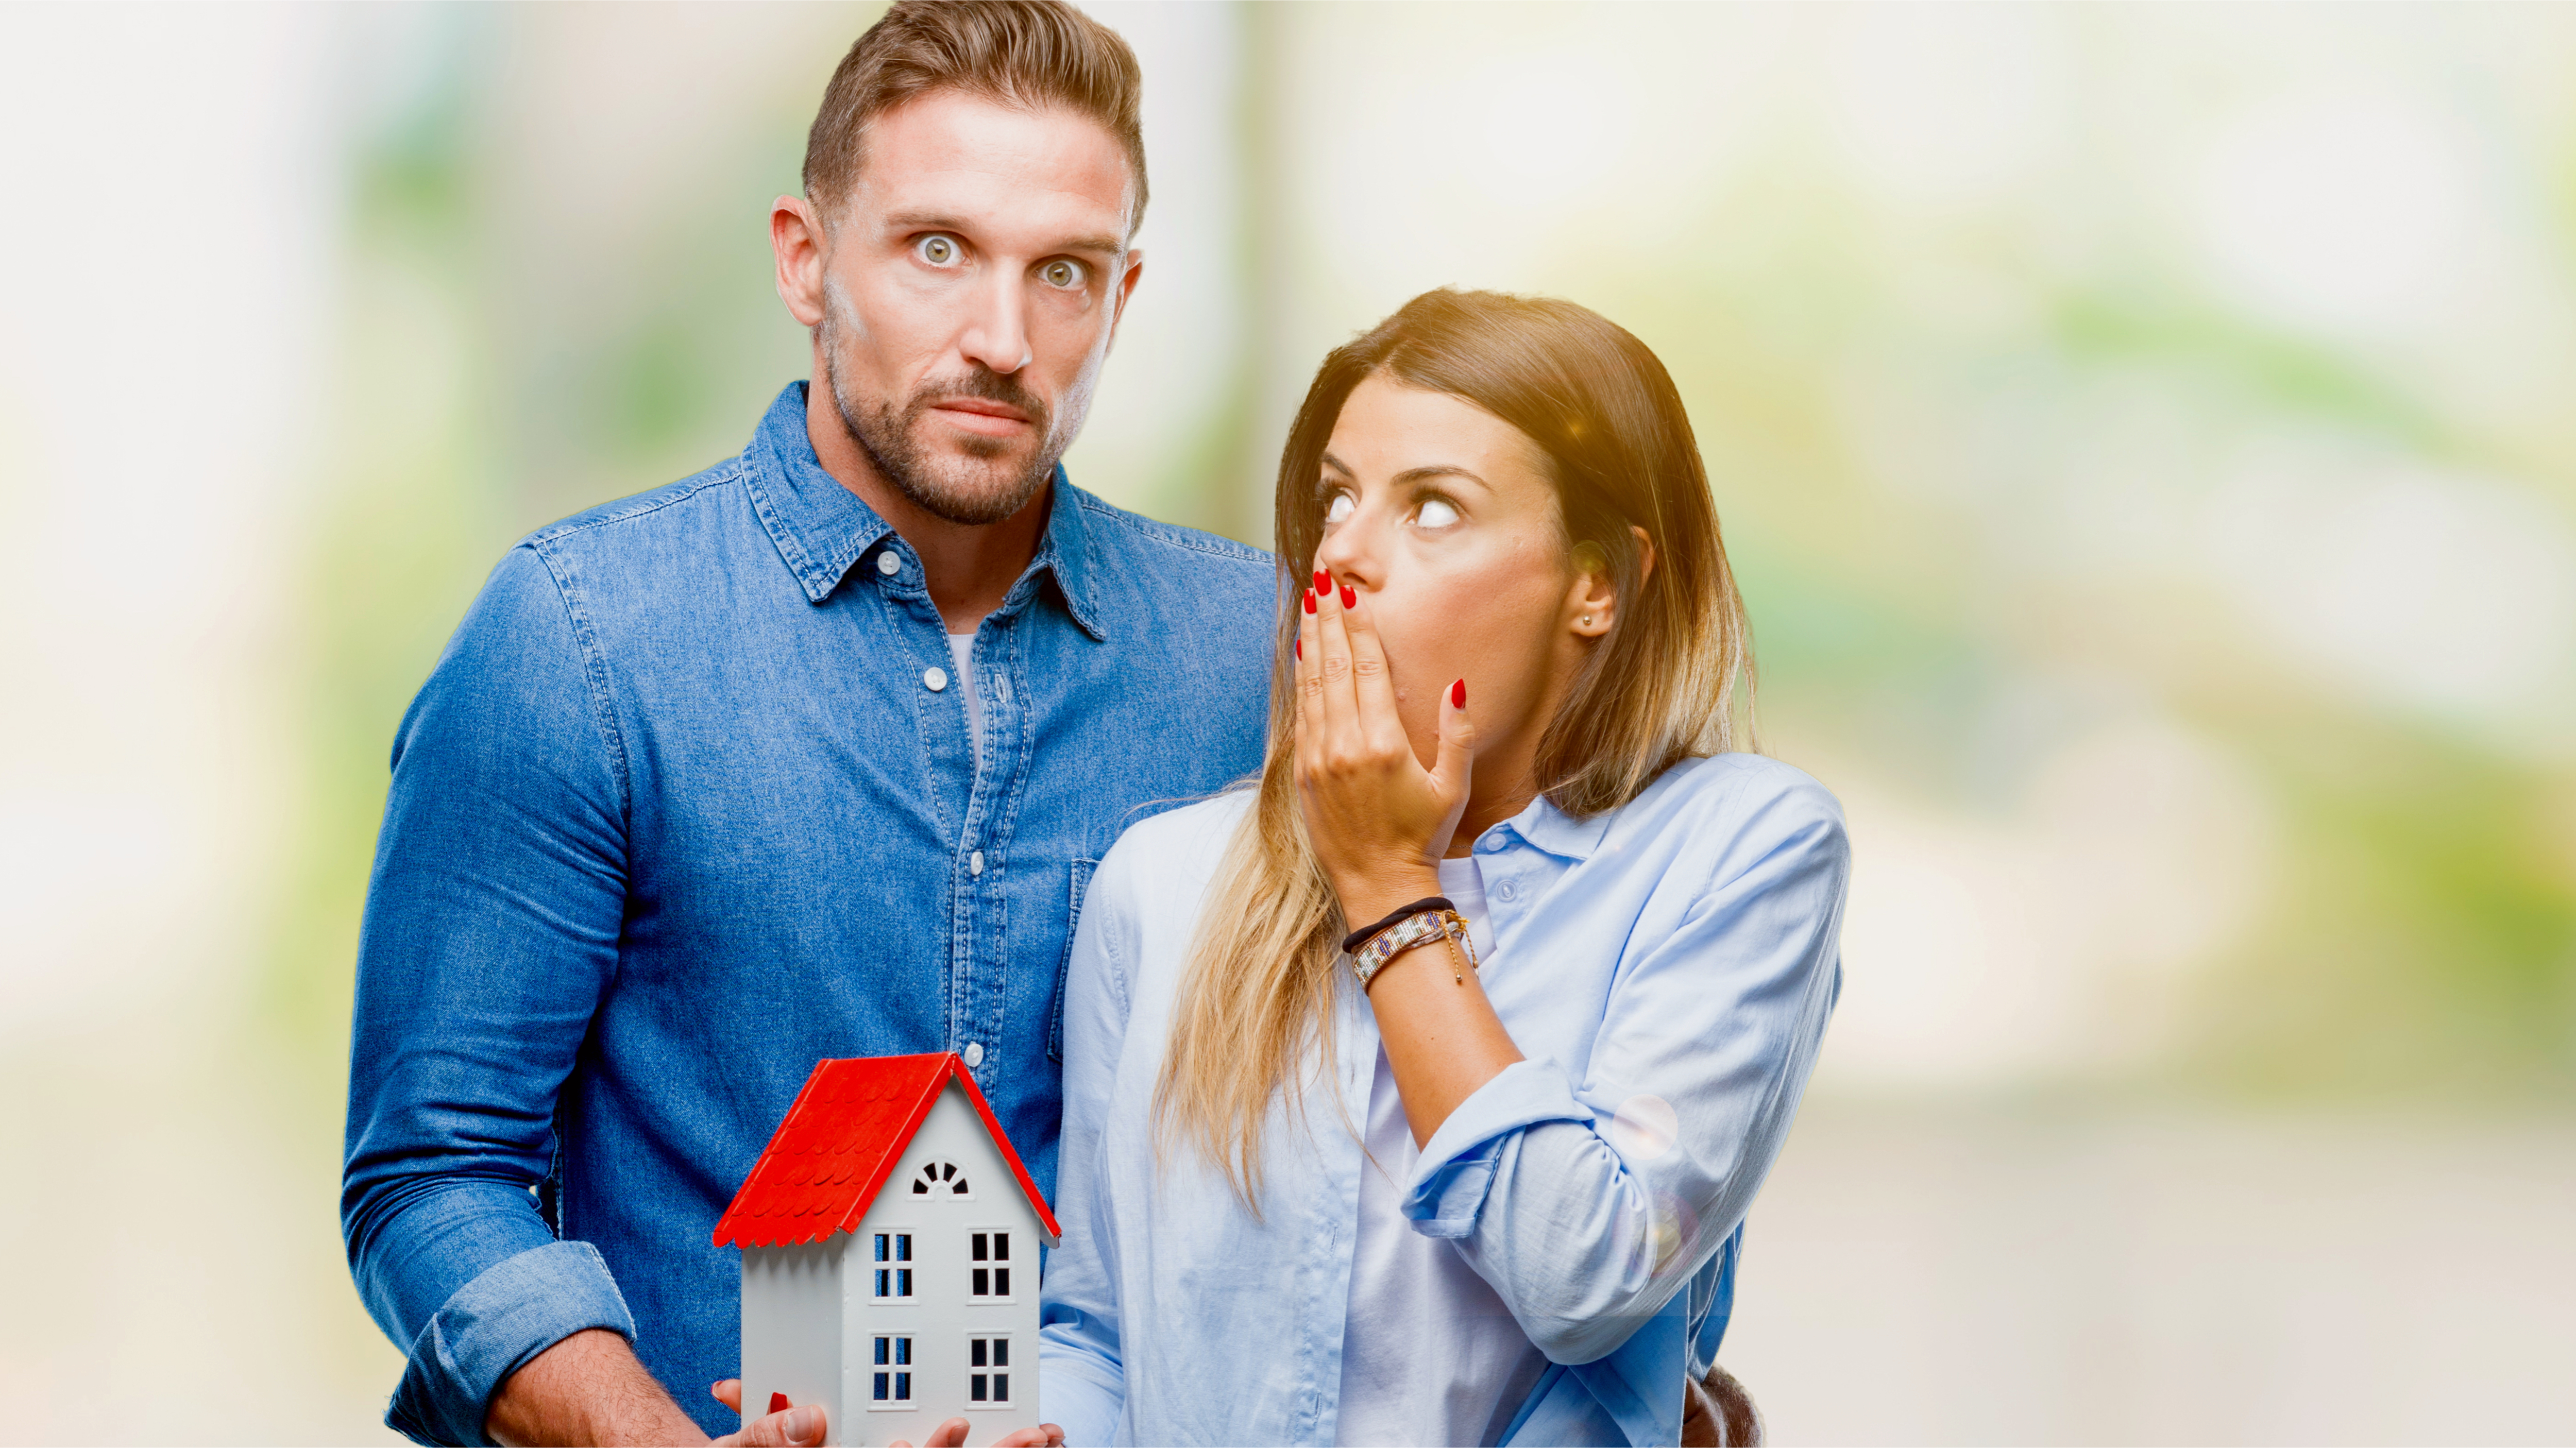 Why are you scared of buying property right now? - August 2020